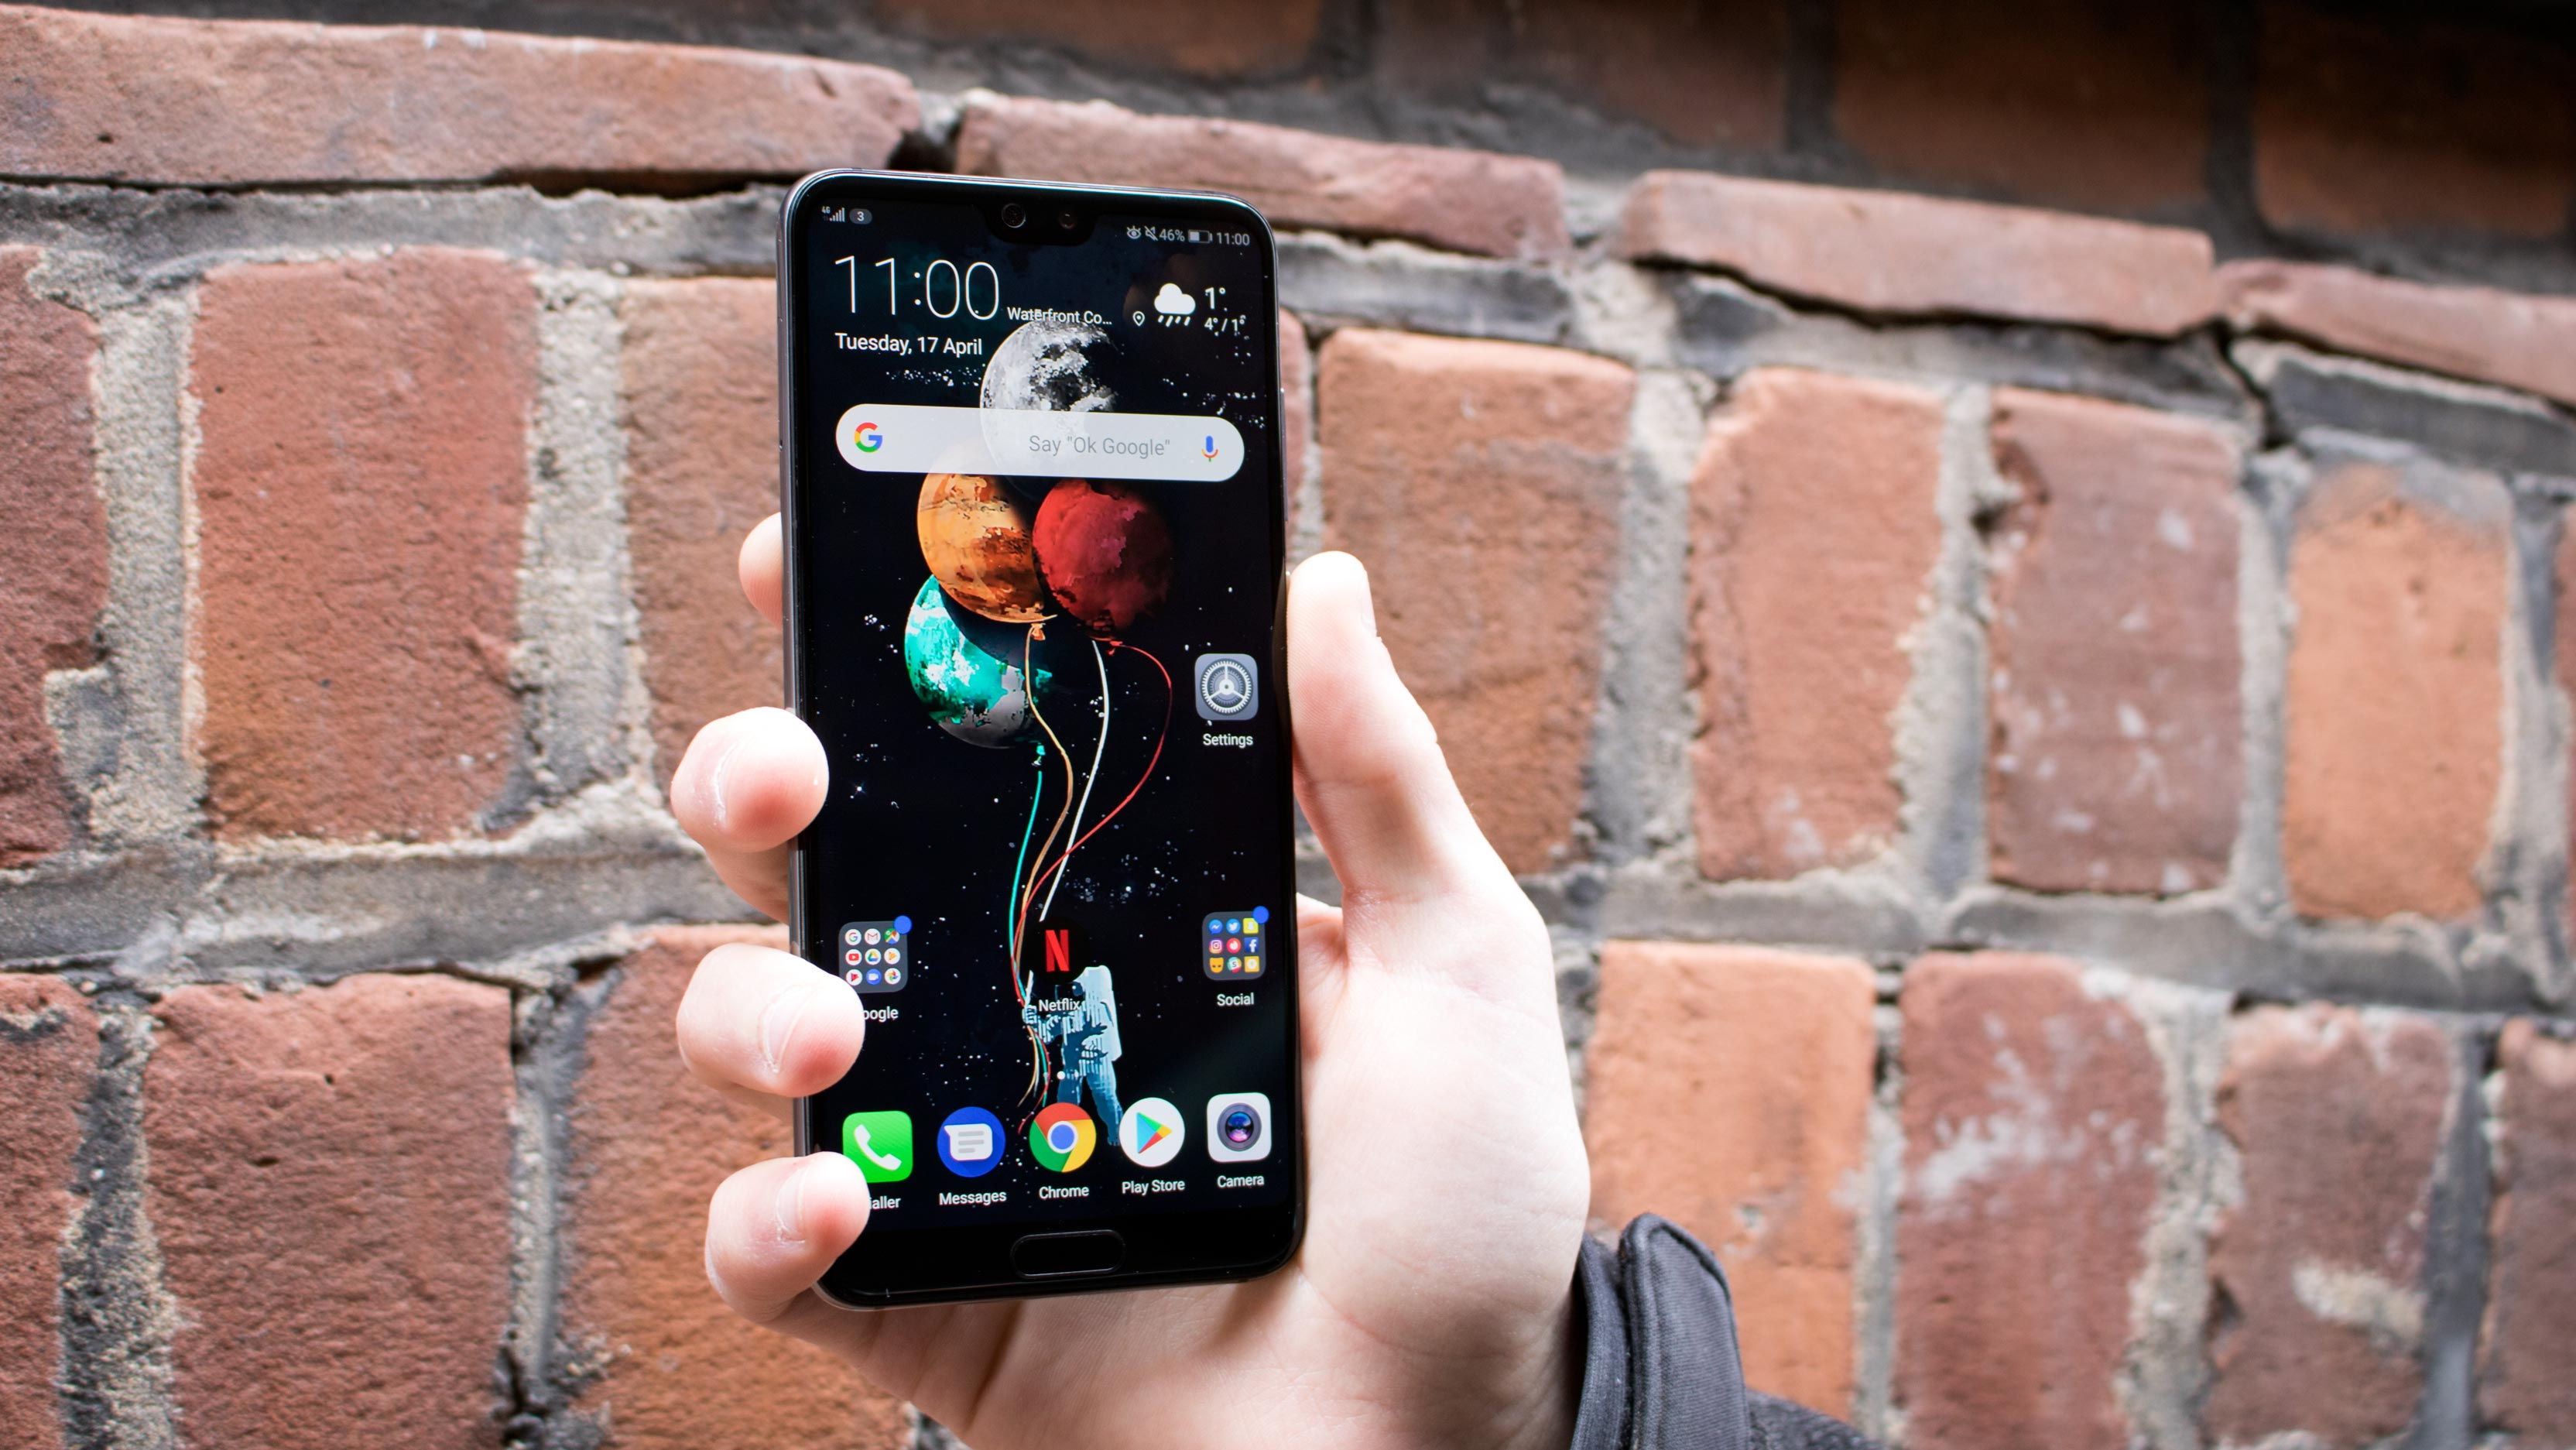 Huawei P20 Pro review: So much more than just a great camera